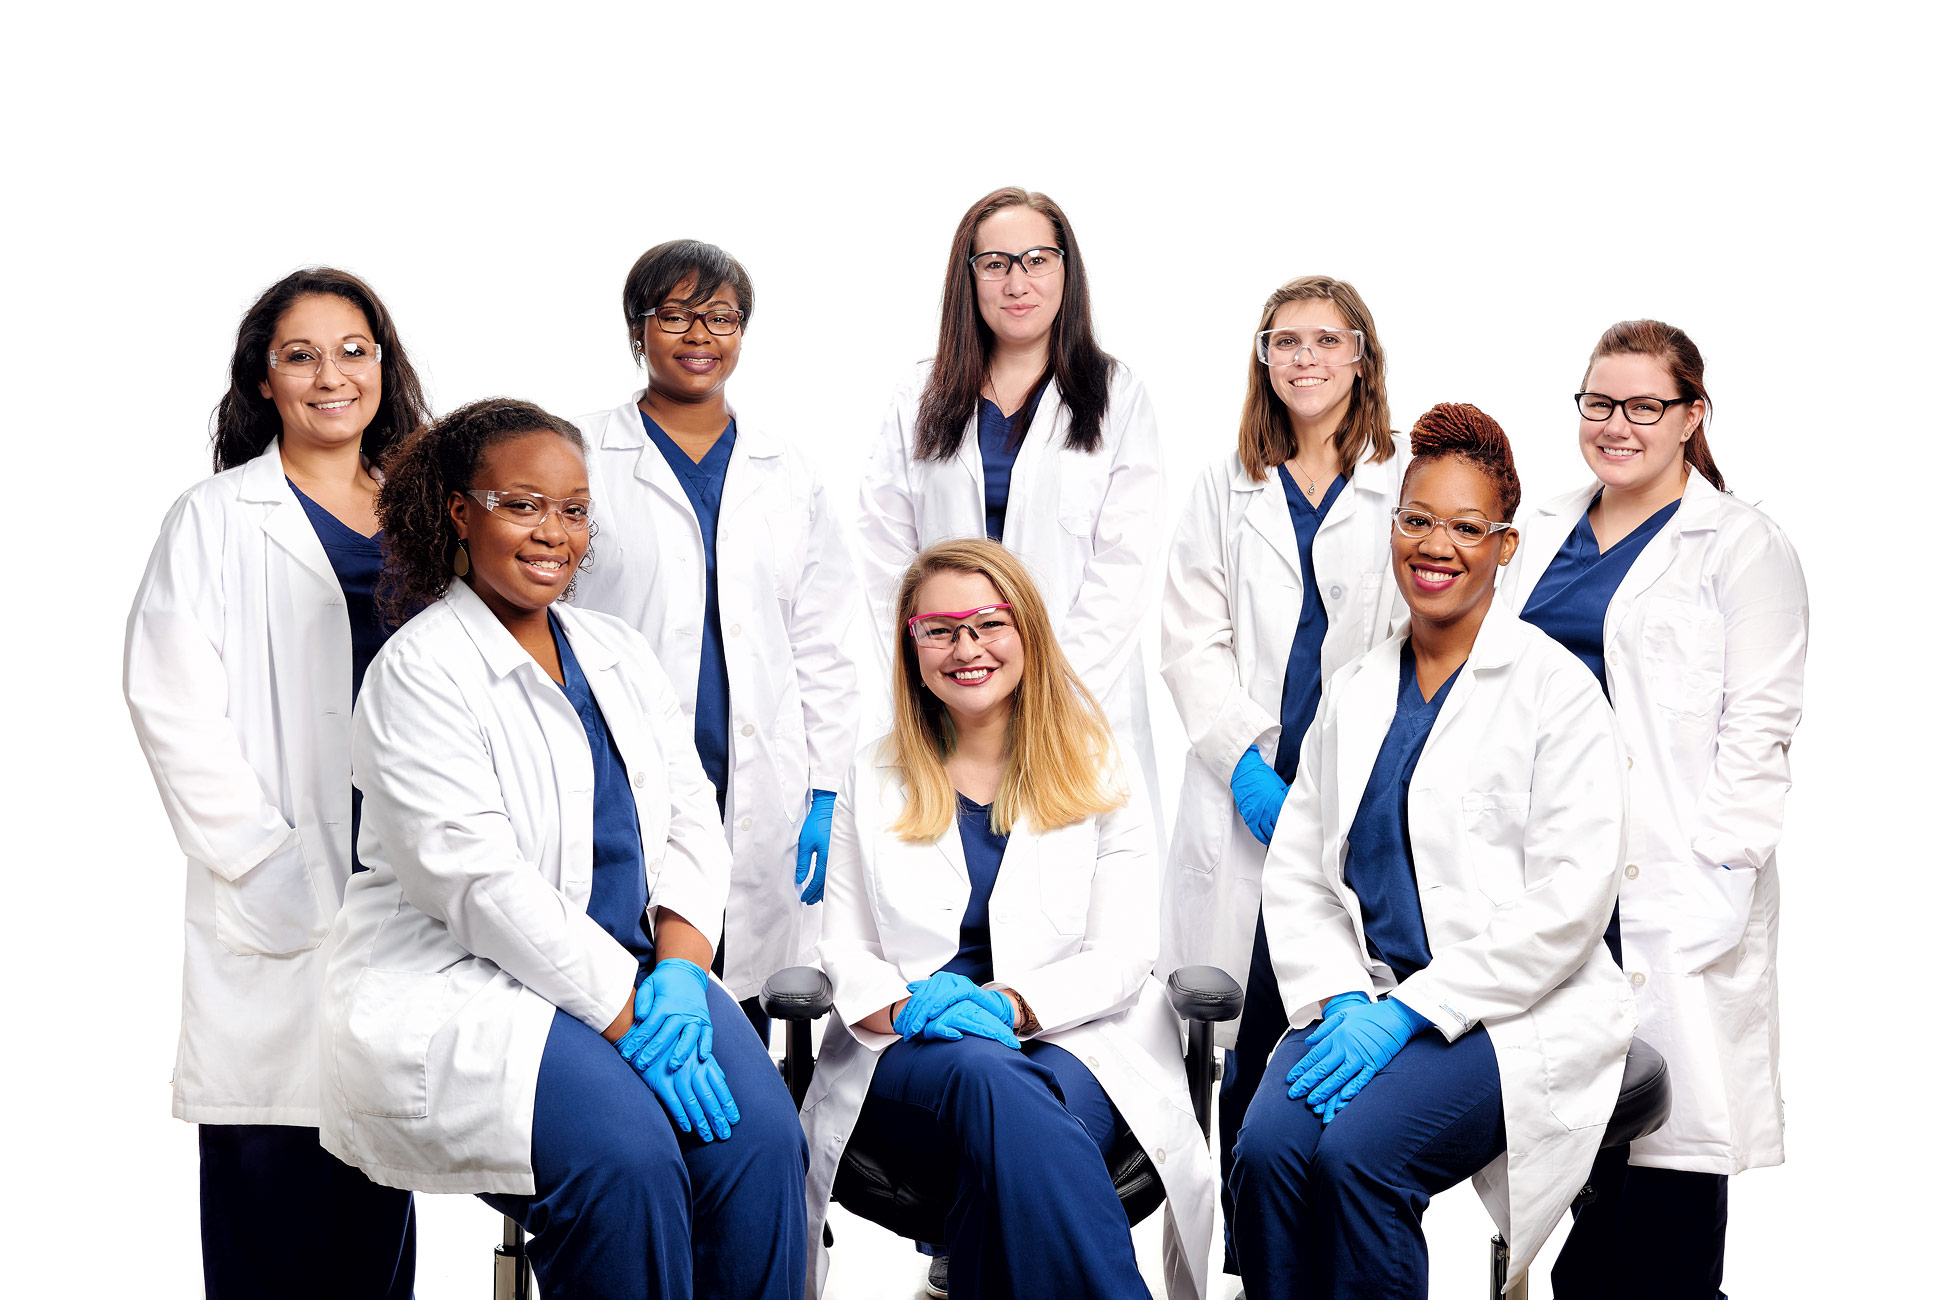 Laboratory staff group portrait at Avertest in St. Louis